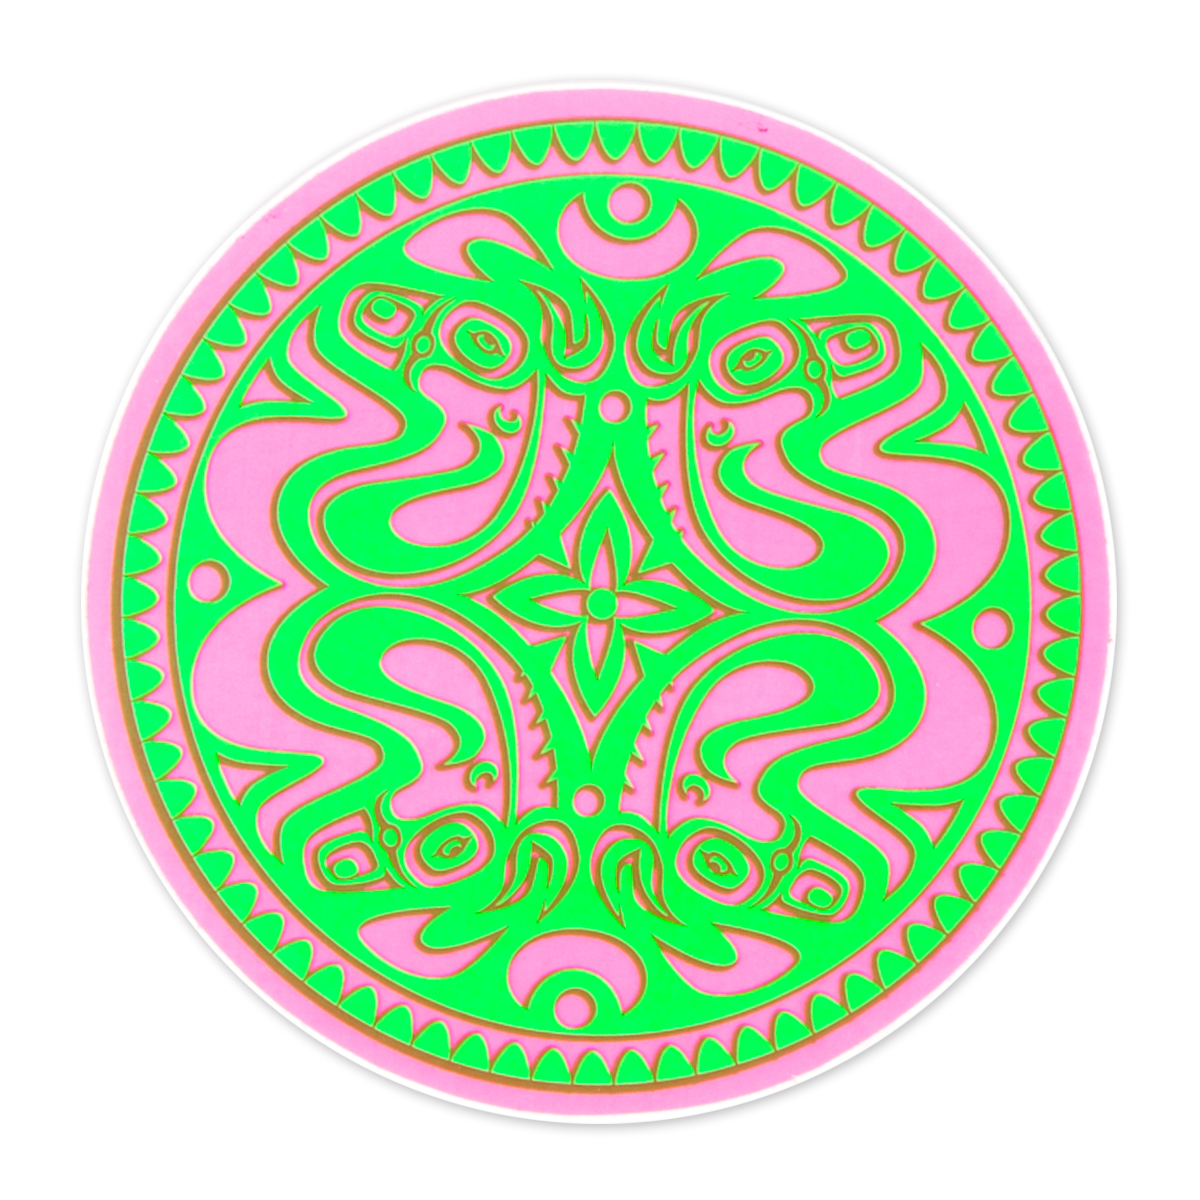 Gov't Mule Pink/Green Neon Dose Sticker